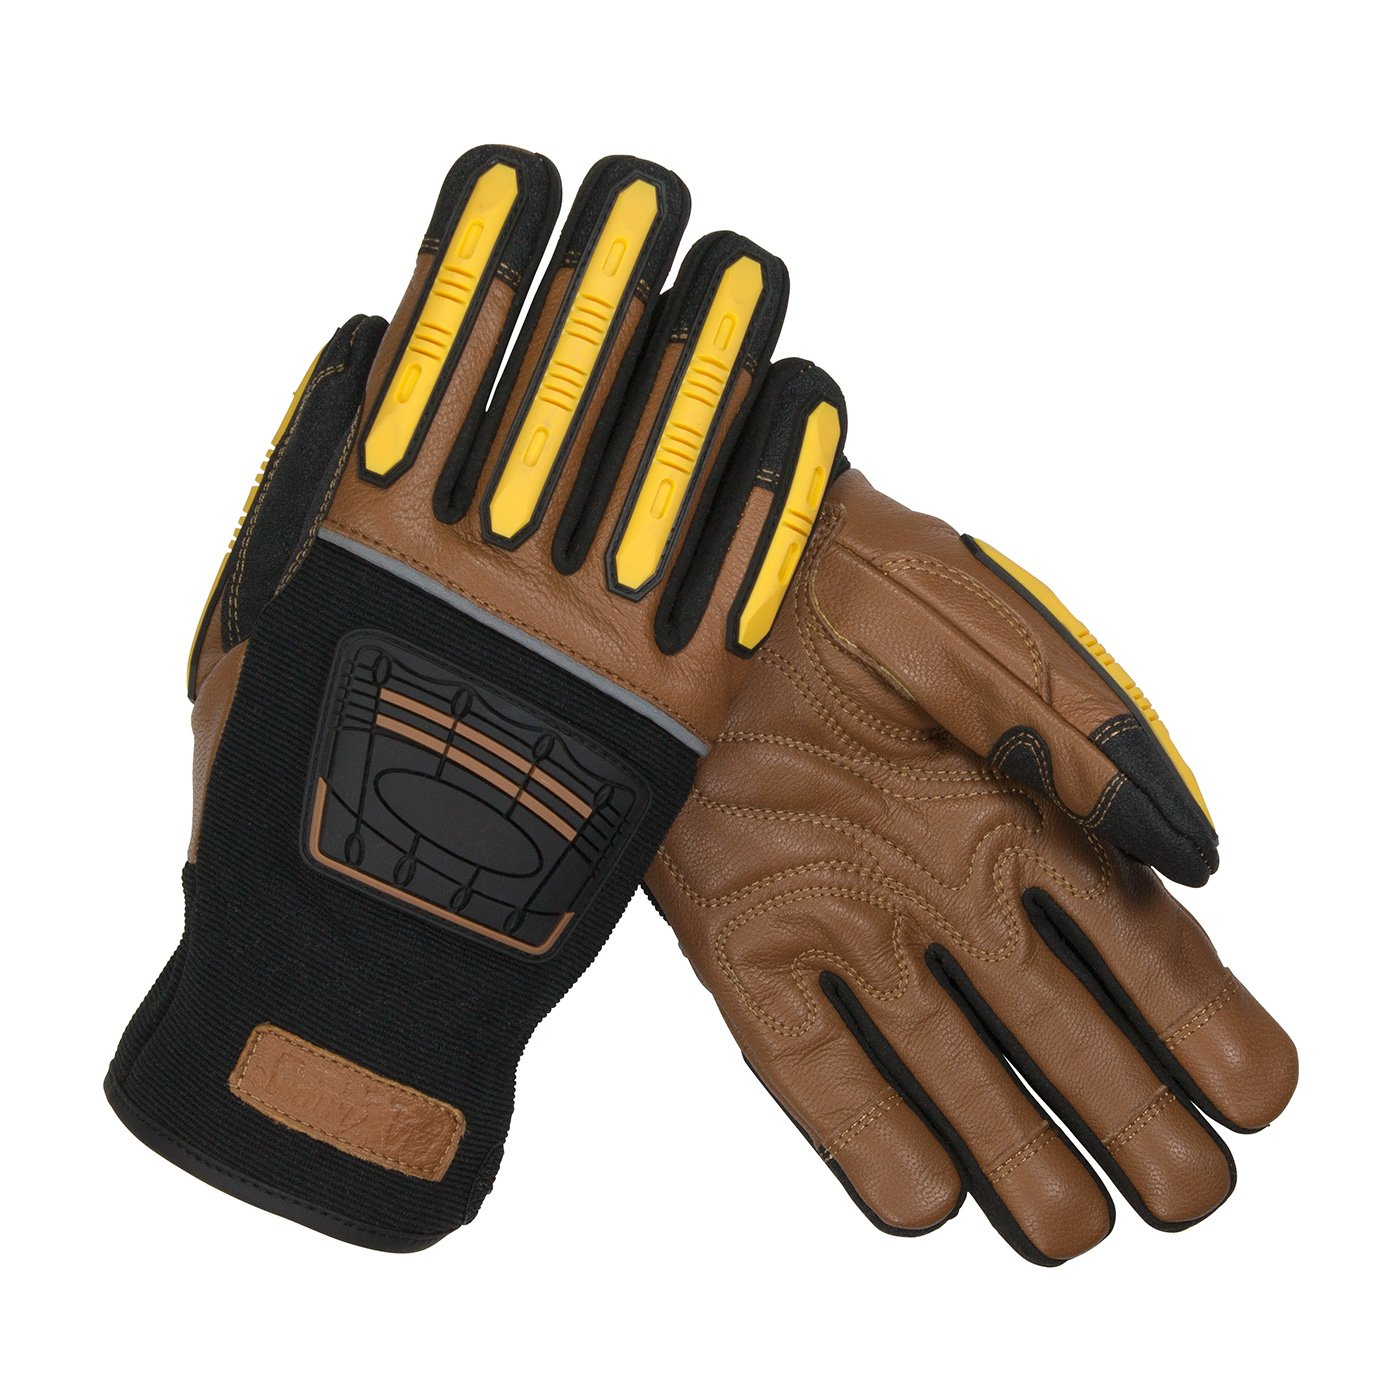 Maximum Safety 120-4150/XXXL Reinforced Goatskin Leather Palm Glove with Leather Back, Kevlar Lining and TPR Molded Knuckle and Dorsal Guards by Maximum Safety (Image #1)